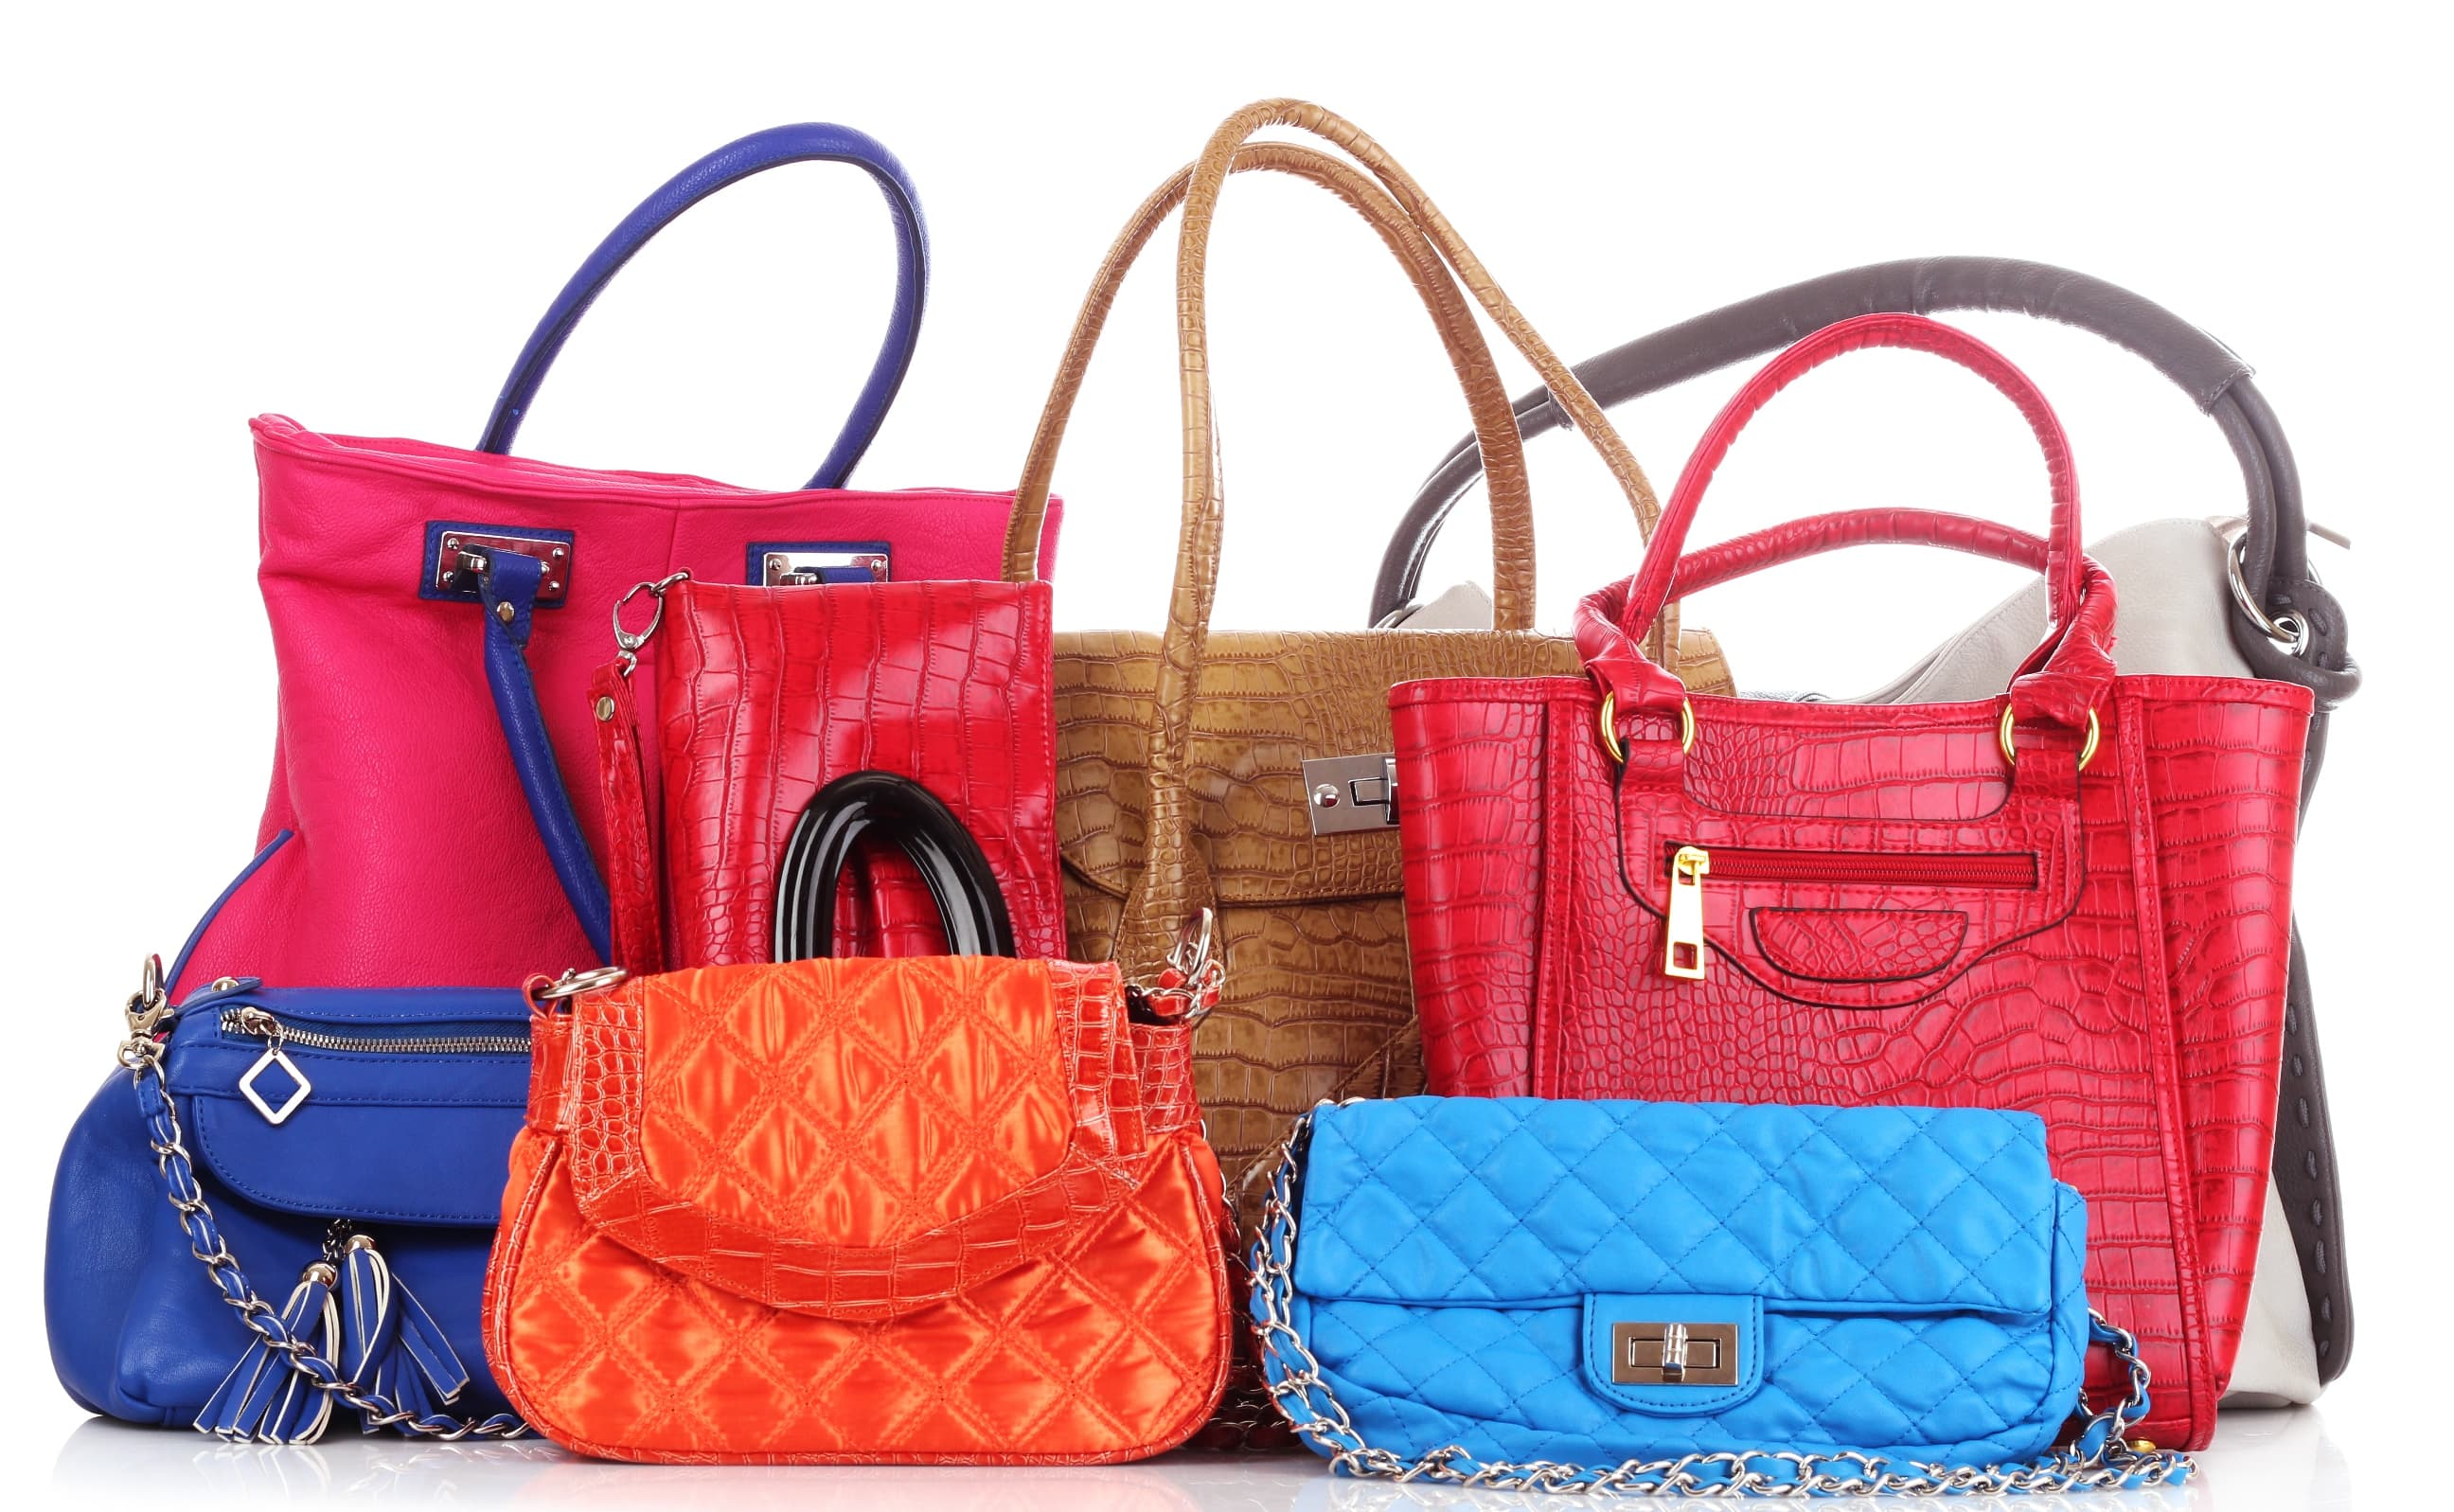 Many color women bags on white